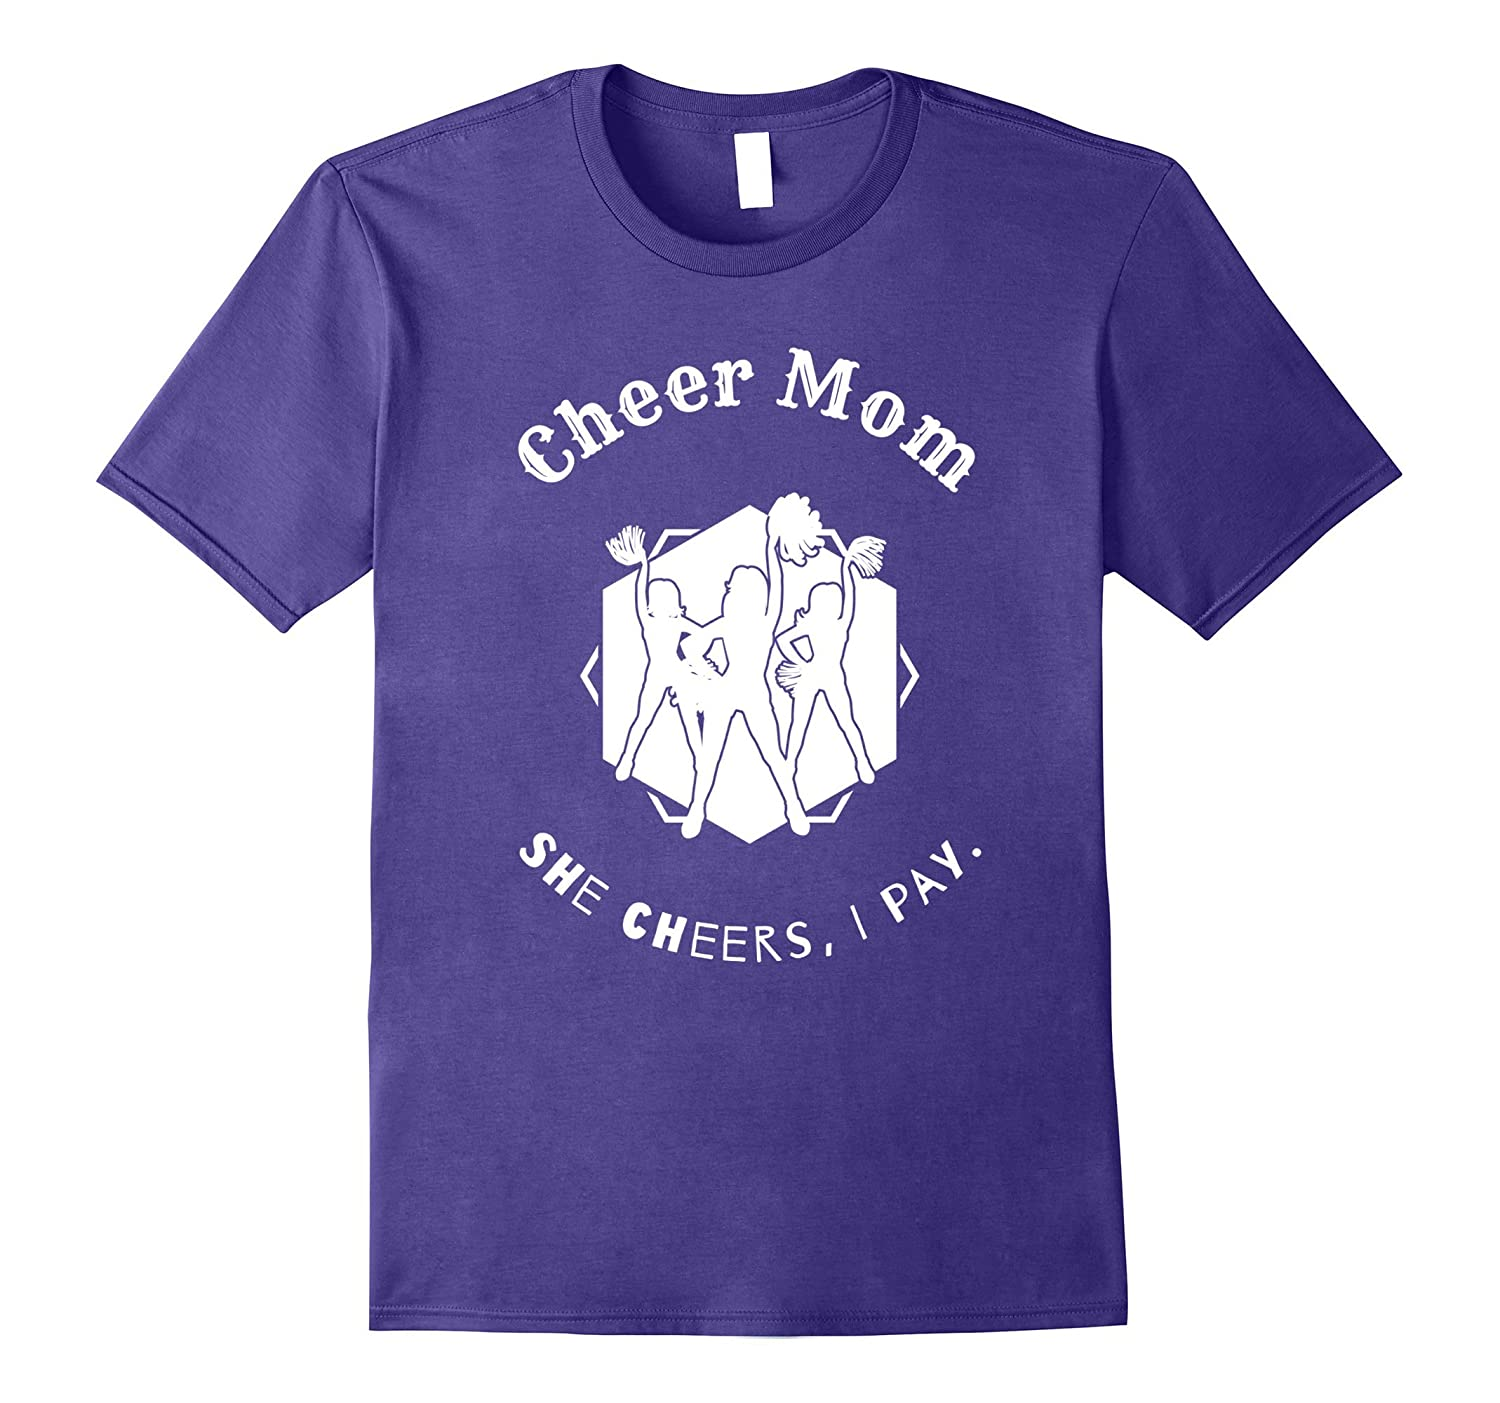 Cheer Mom She Cheers I Pay T Shirts Funny Quotes Flip Bling- TPT